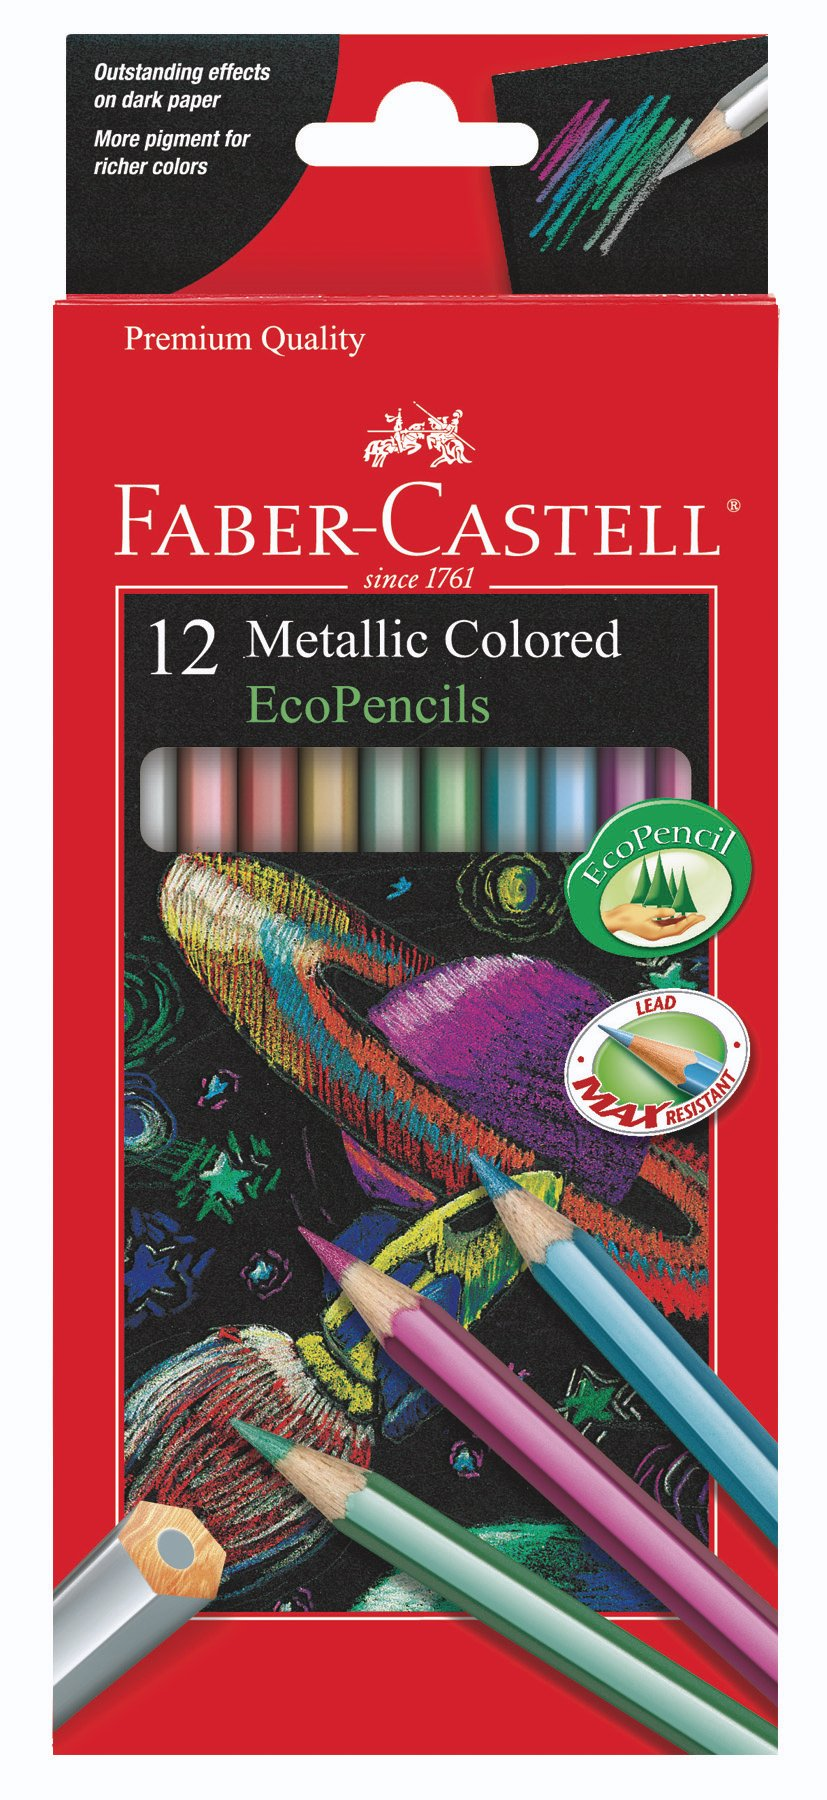 Faber Castell Metallic Colored Ecopencils - 12 Break Resistant Coloring Pencils by Faber Castell